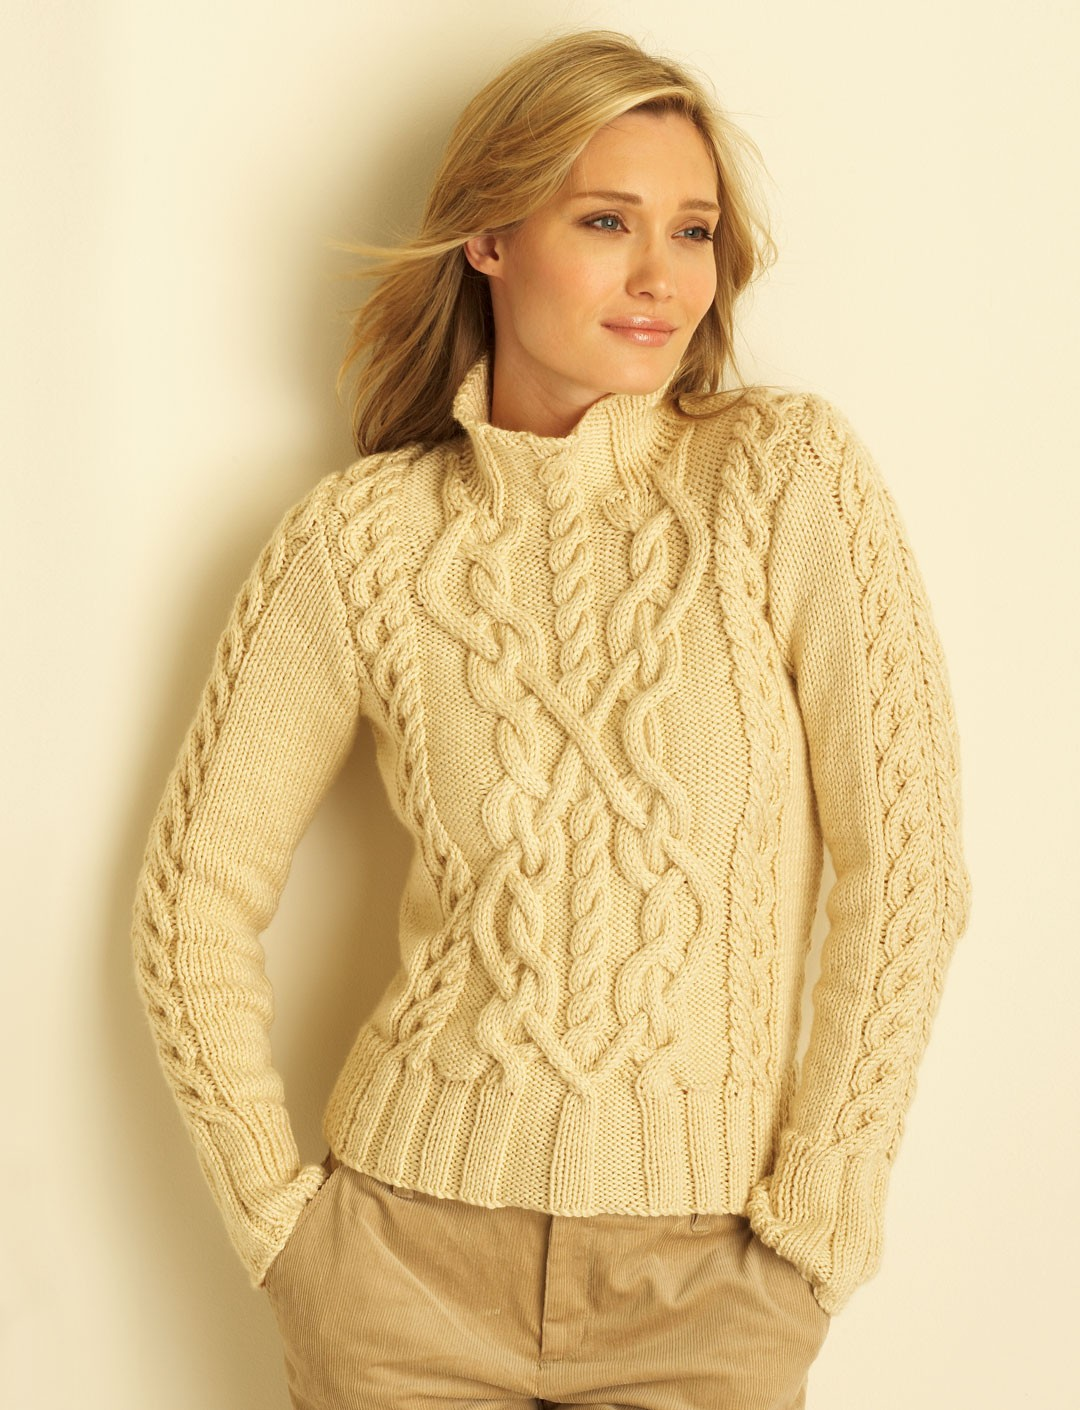 Free Knitting Patterns Ladies : Cable Sweater - Patterns Yarnspirations